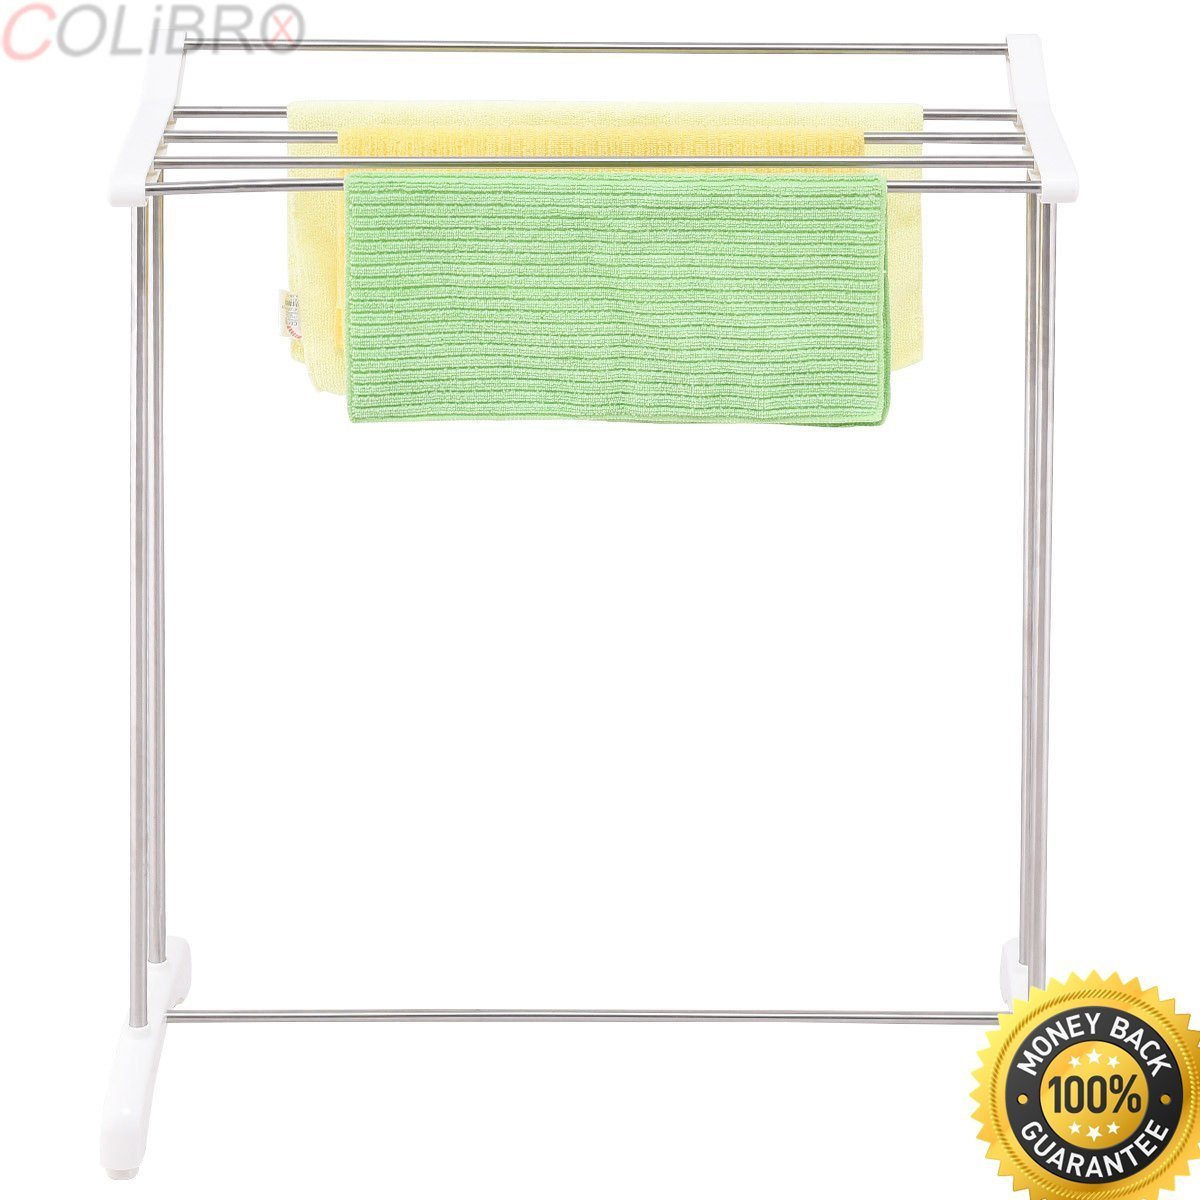 COLIBROX--Free Standing Towel Rack Stand Stainless Steel Bathroom Organizer Hanger New. free standing towel rack brushed nickel. free standing towel stand. floor towel rack. towel rack shelf.